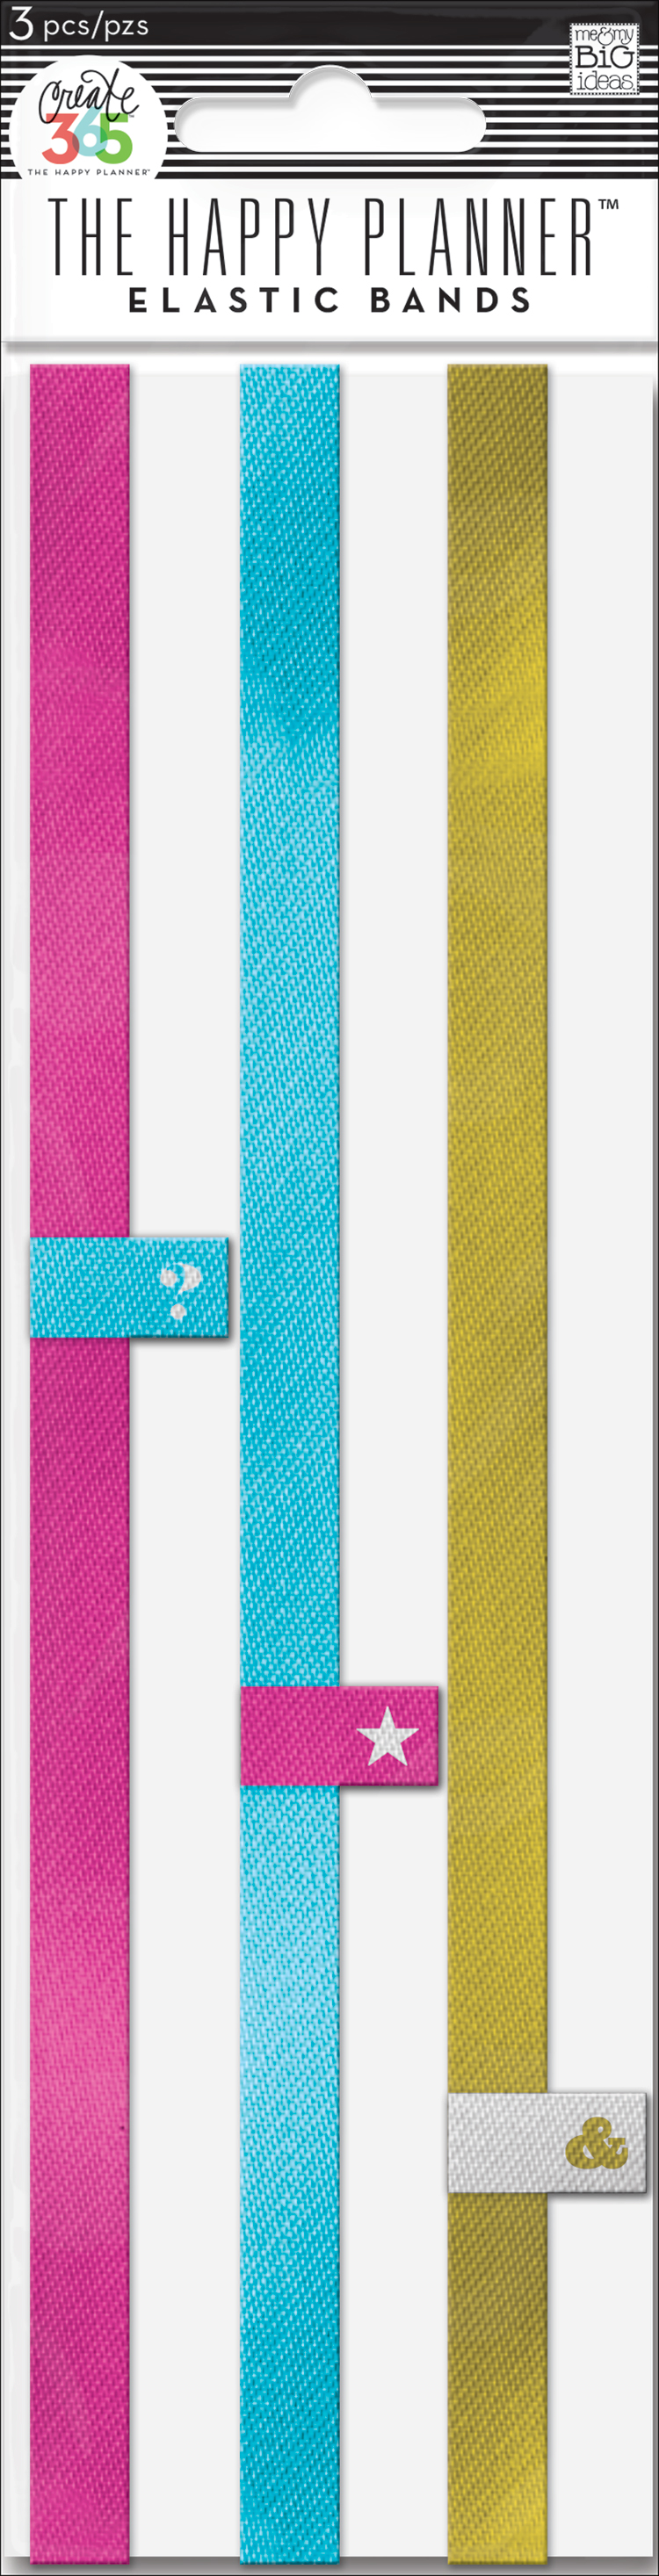 Elastic Bands for The Happy Planner™ | me & my BIG ideas.jpg